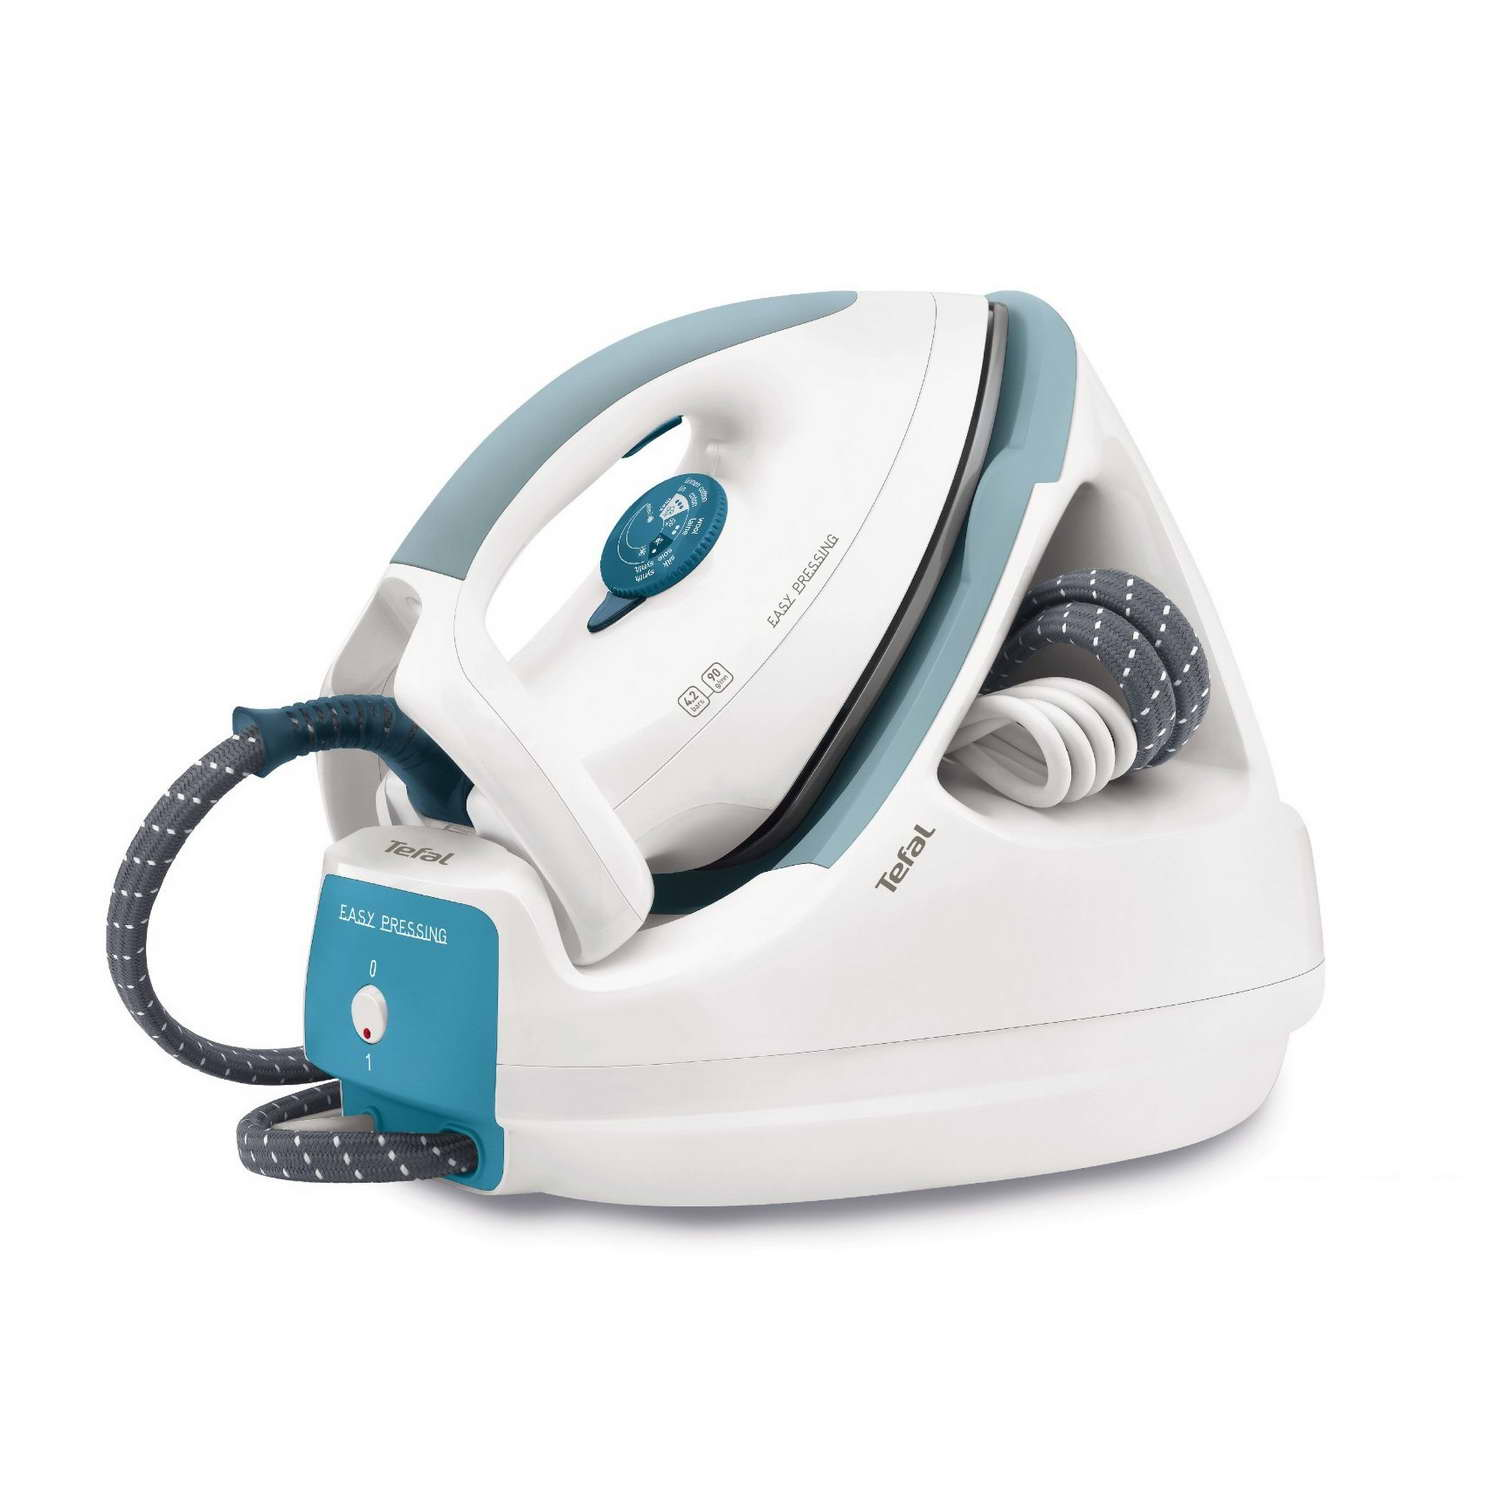 Steam Generator Iron ~ Tefal gv easy pressing steam generator iron ultra